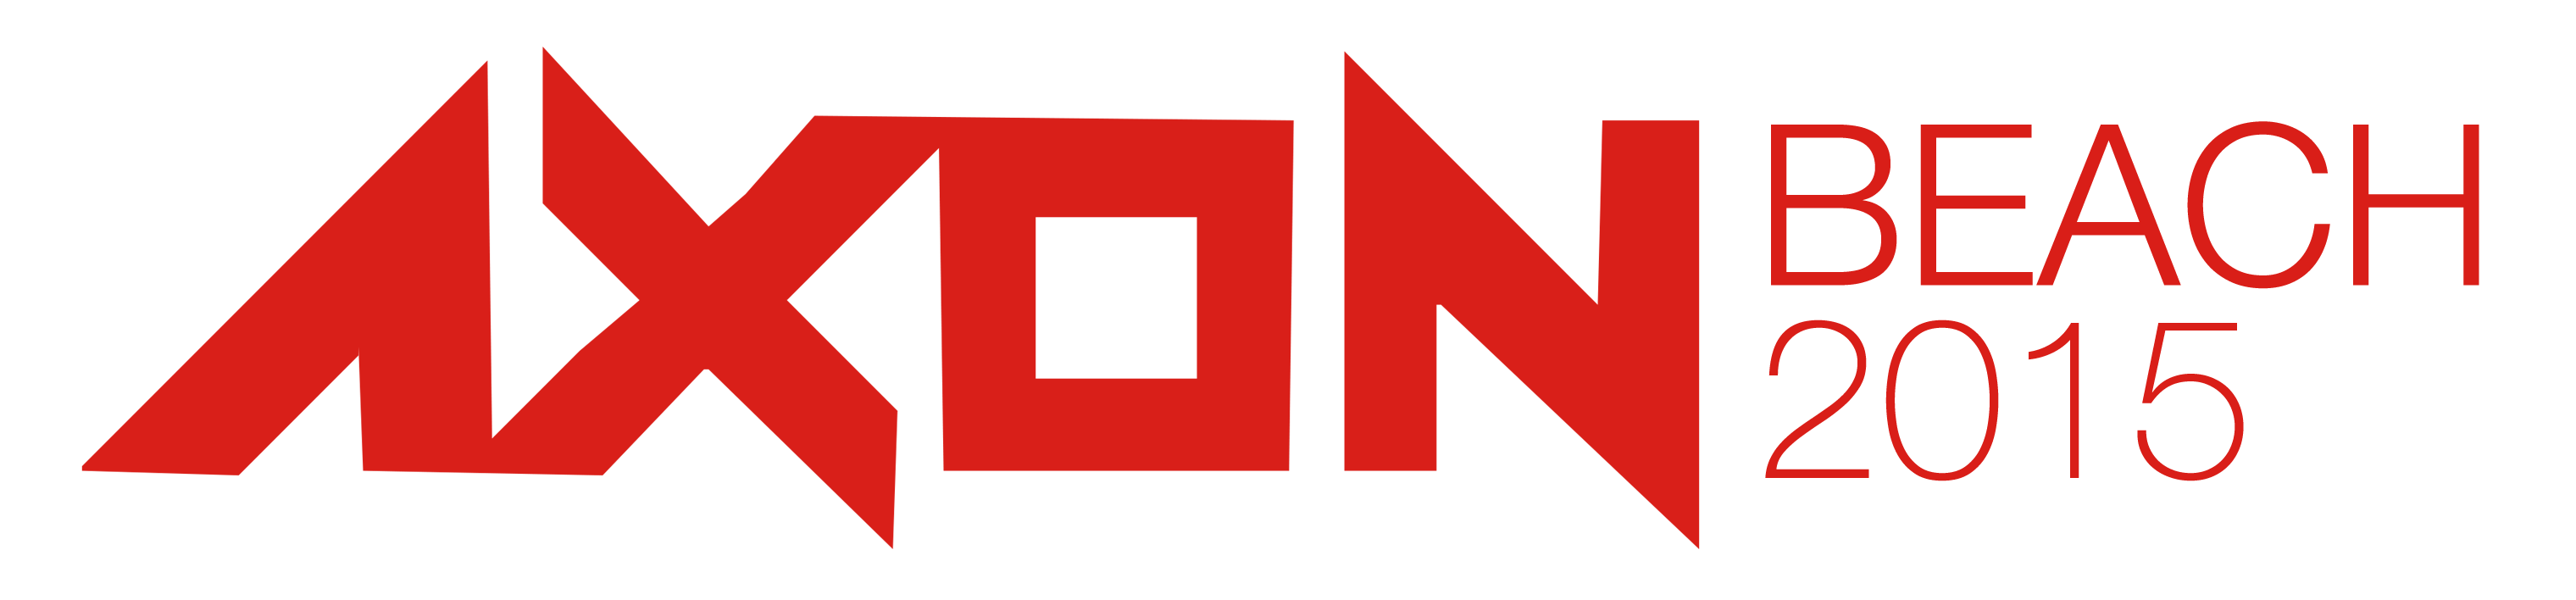 beach-2015-logo-red